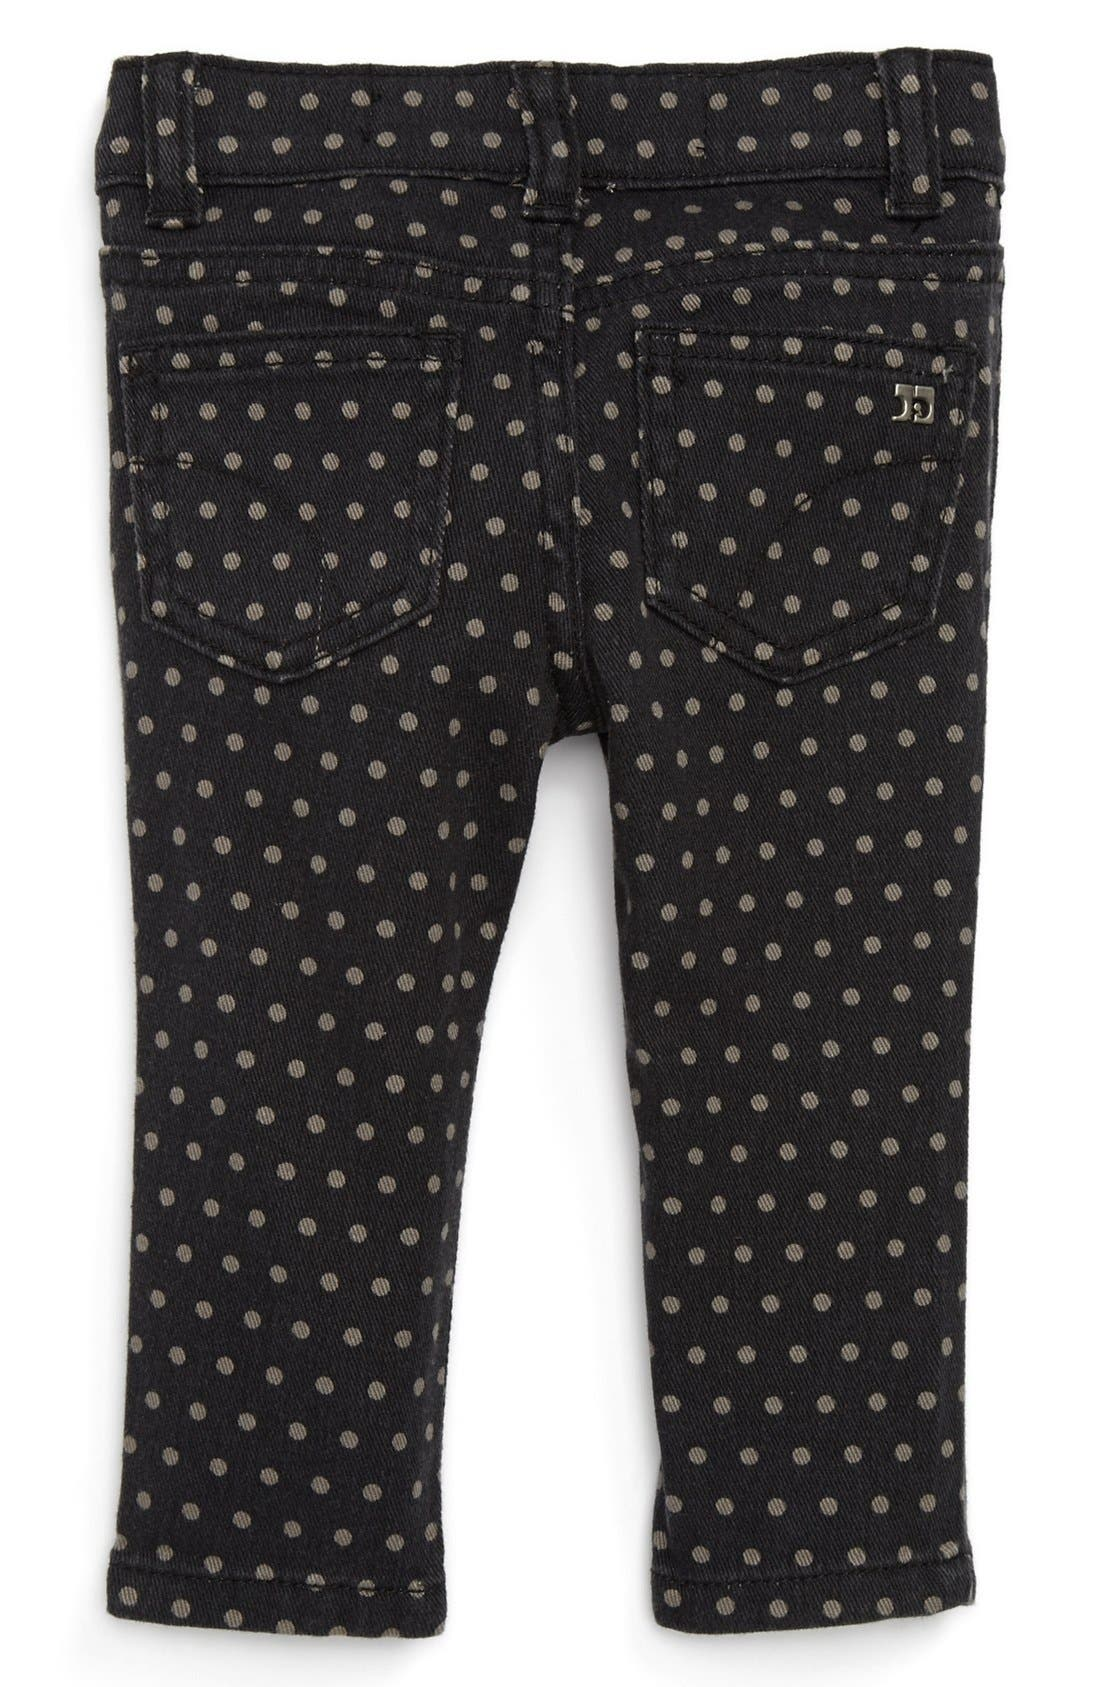 Alternate Image 1 Selected - Joe's Polka Dot Denim Leggings (Baby Girls)